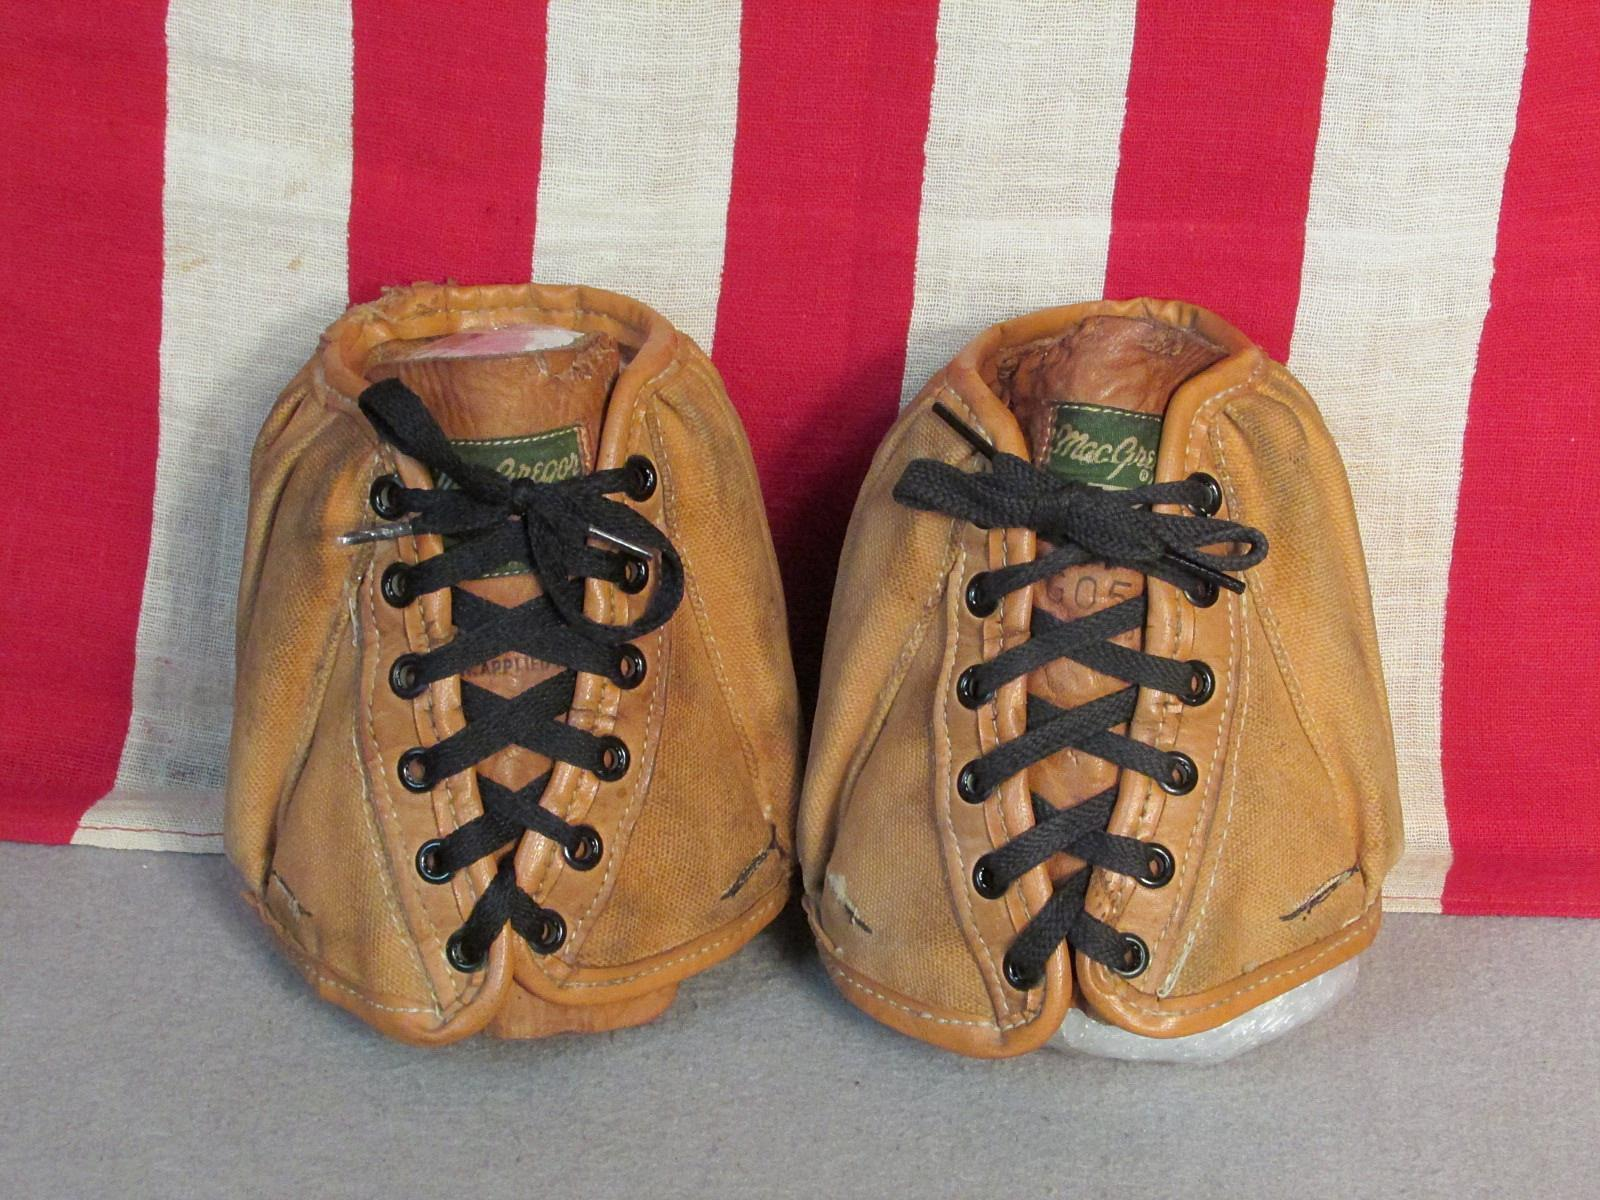 Vintage 1940s MacGregor Leather & Canvas Ankle Weights 3 lbs Exercise Running